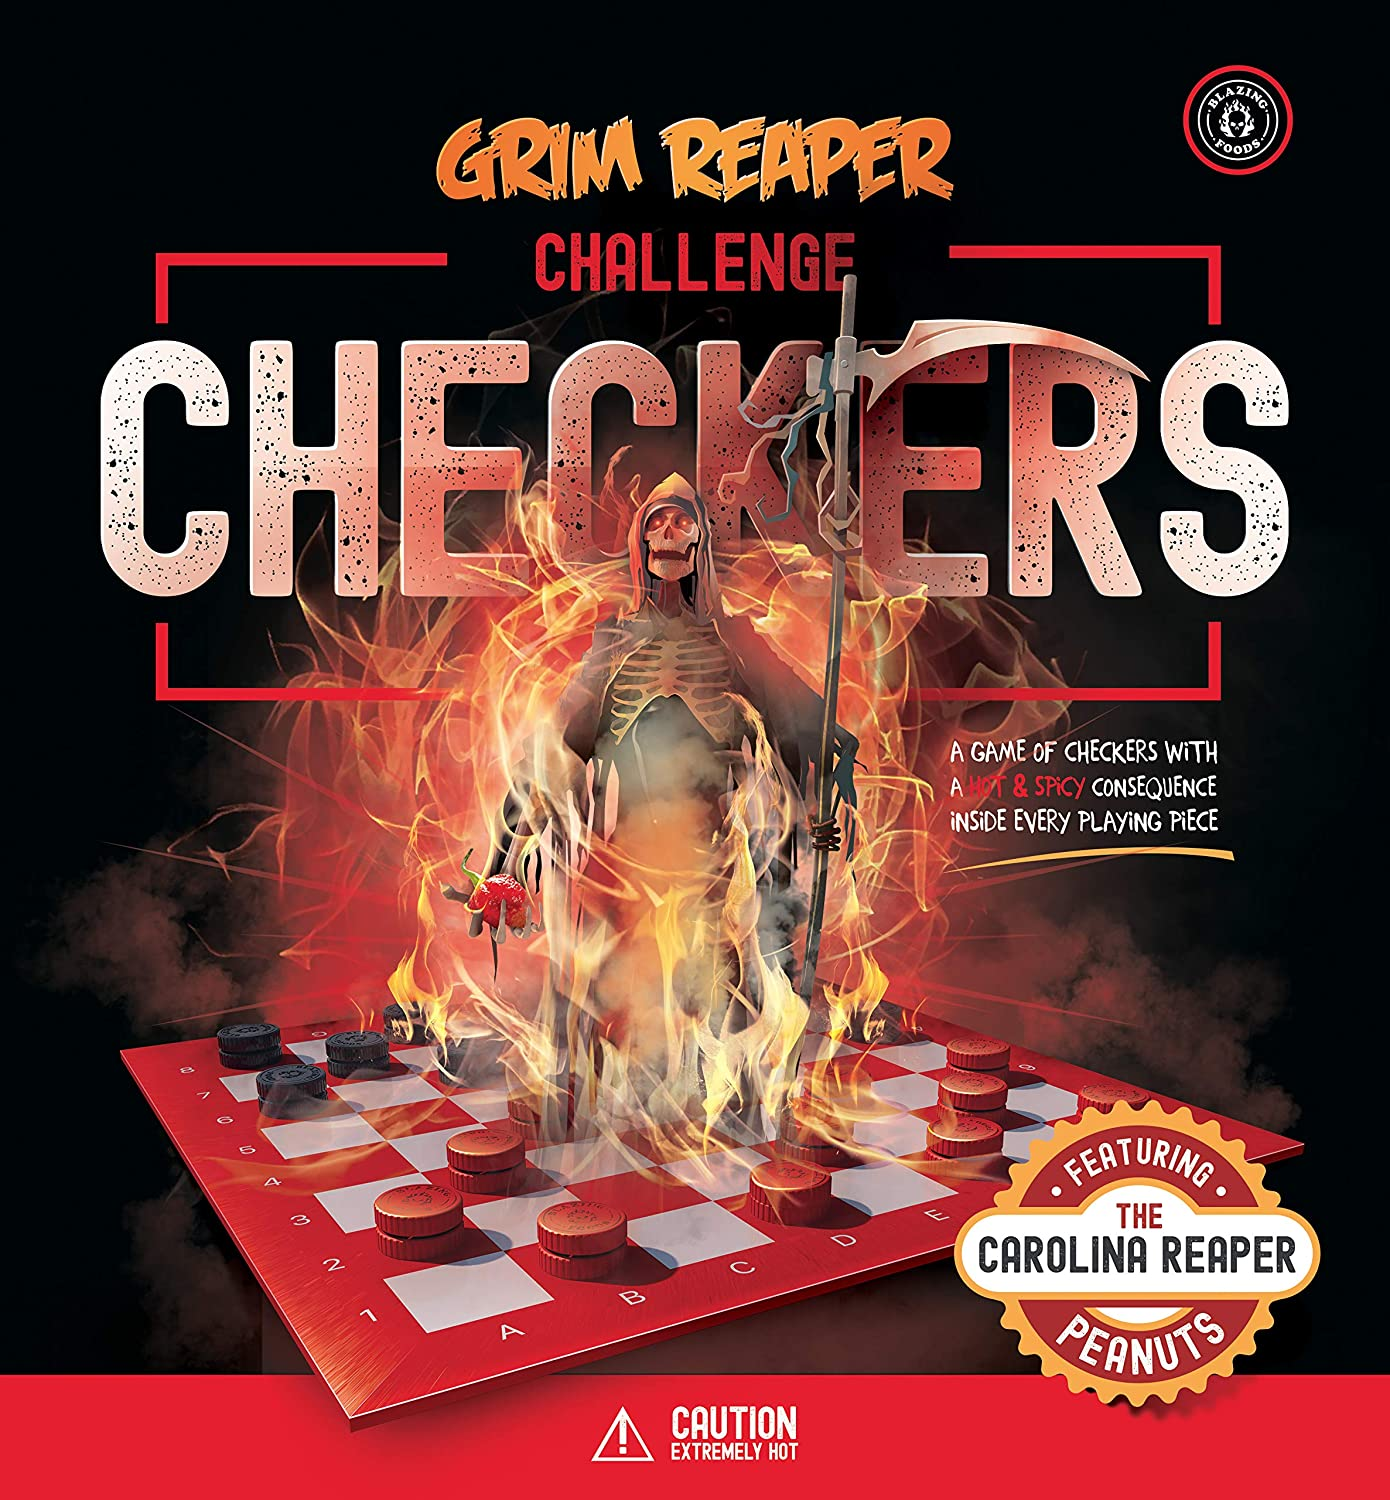 Grim Reaper Challenge Checkers the hottest, spiciest game of challenge checkers where every playing piece gets loaded with a hot and spicy consequences!